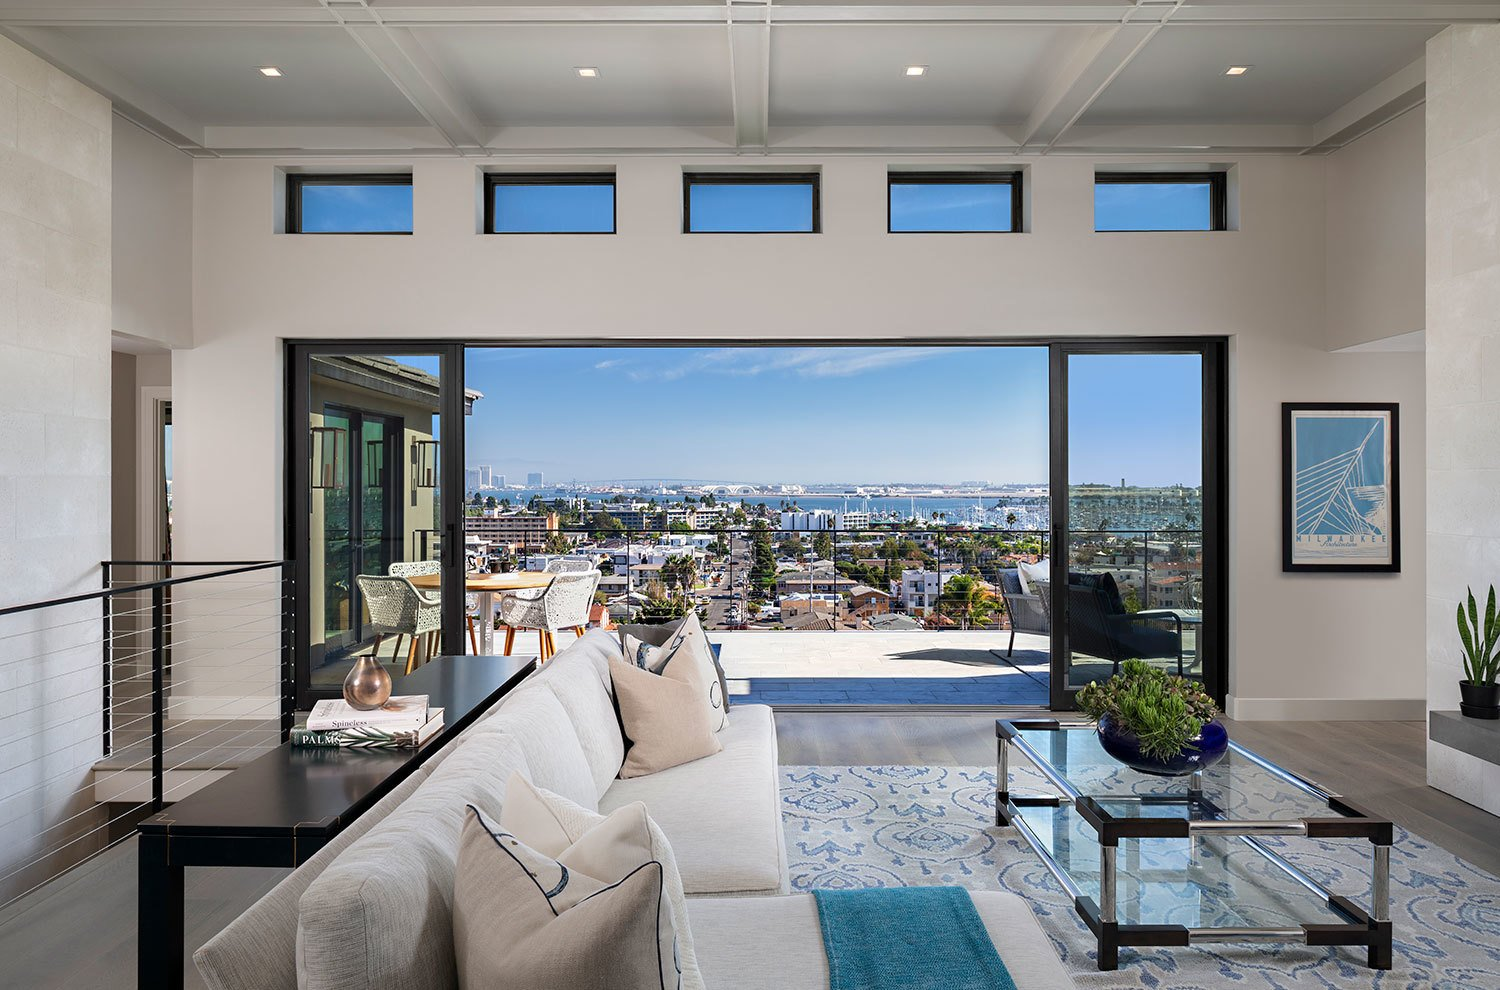 Before & After: A Contemporary Renovation Brings Coastal Views and Indoor/Outdoor Living